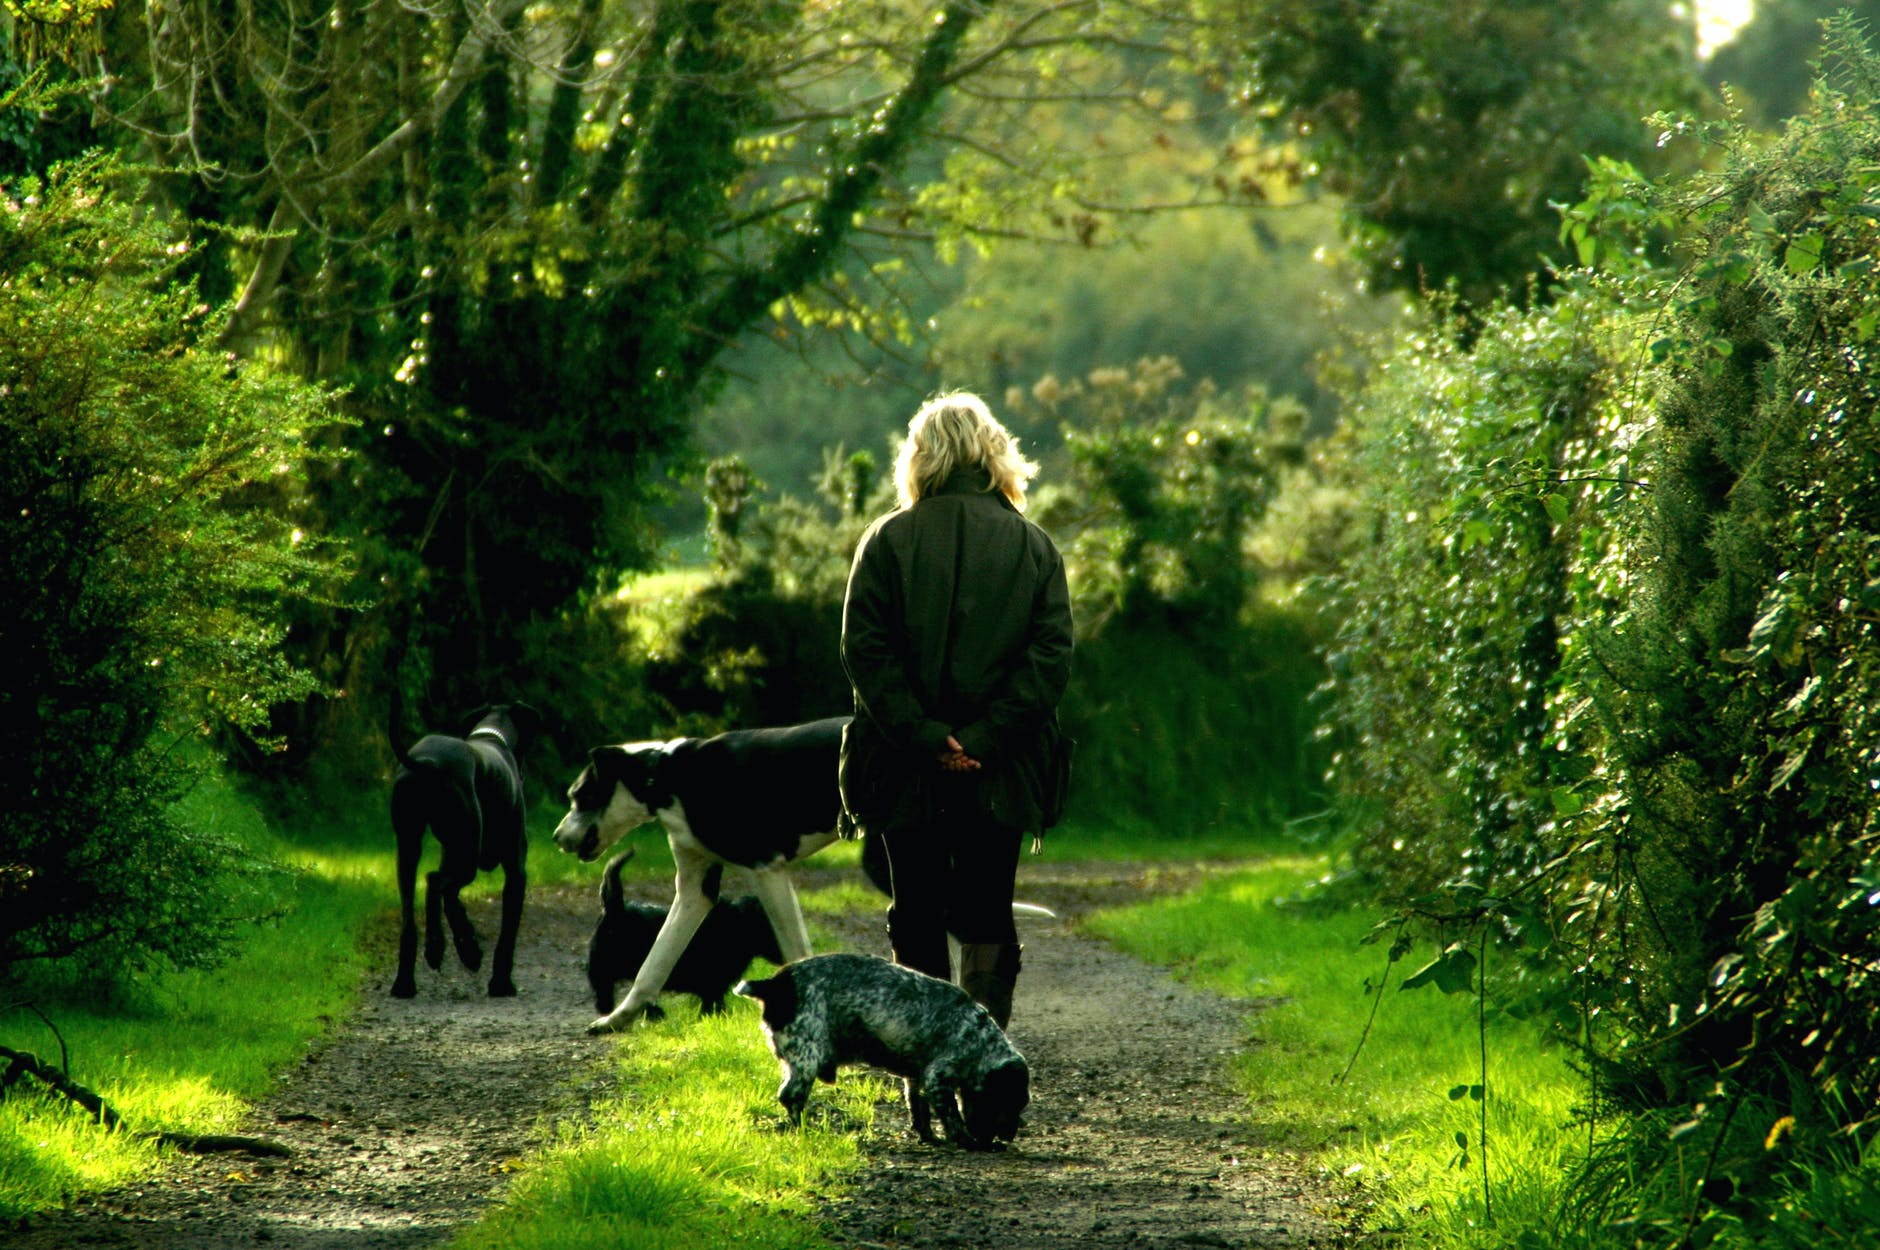 Woman walking with animals outside